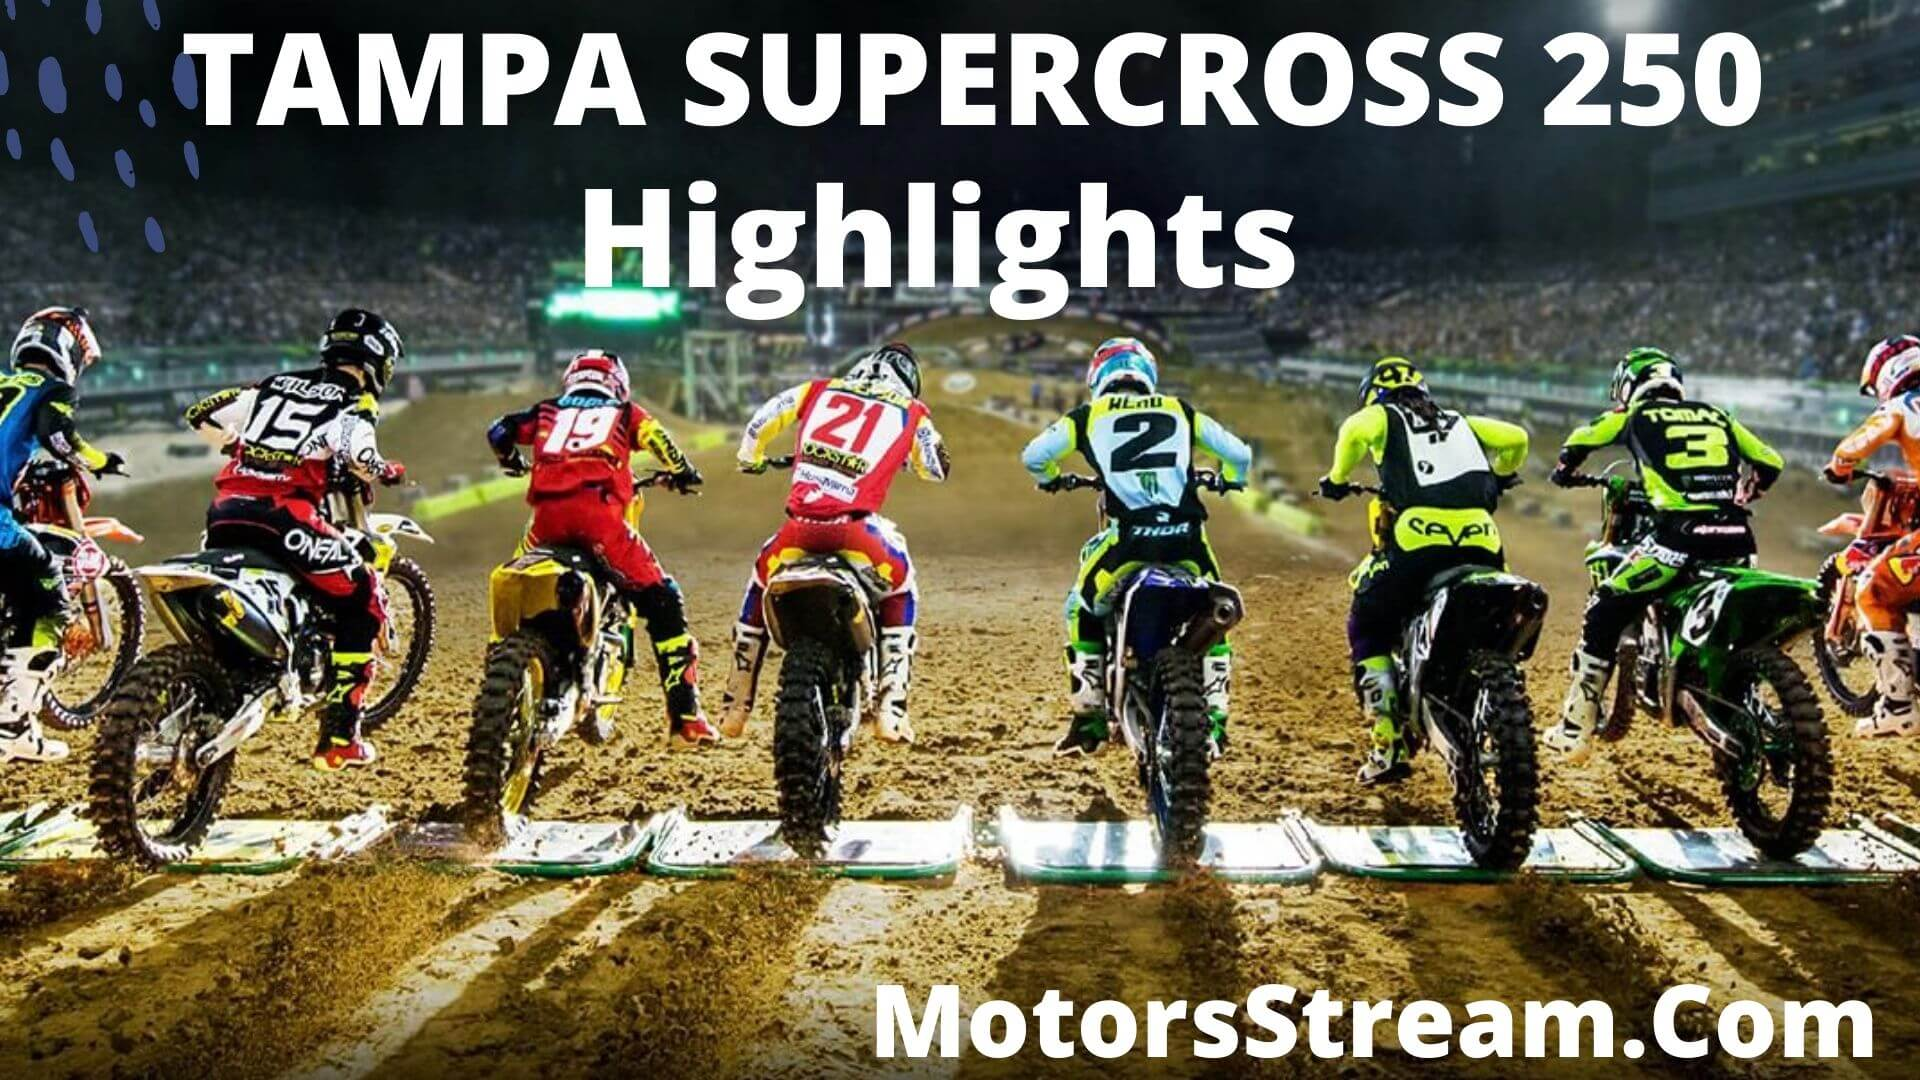 Tampa Supercross 250 Highlights 2020